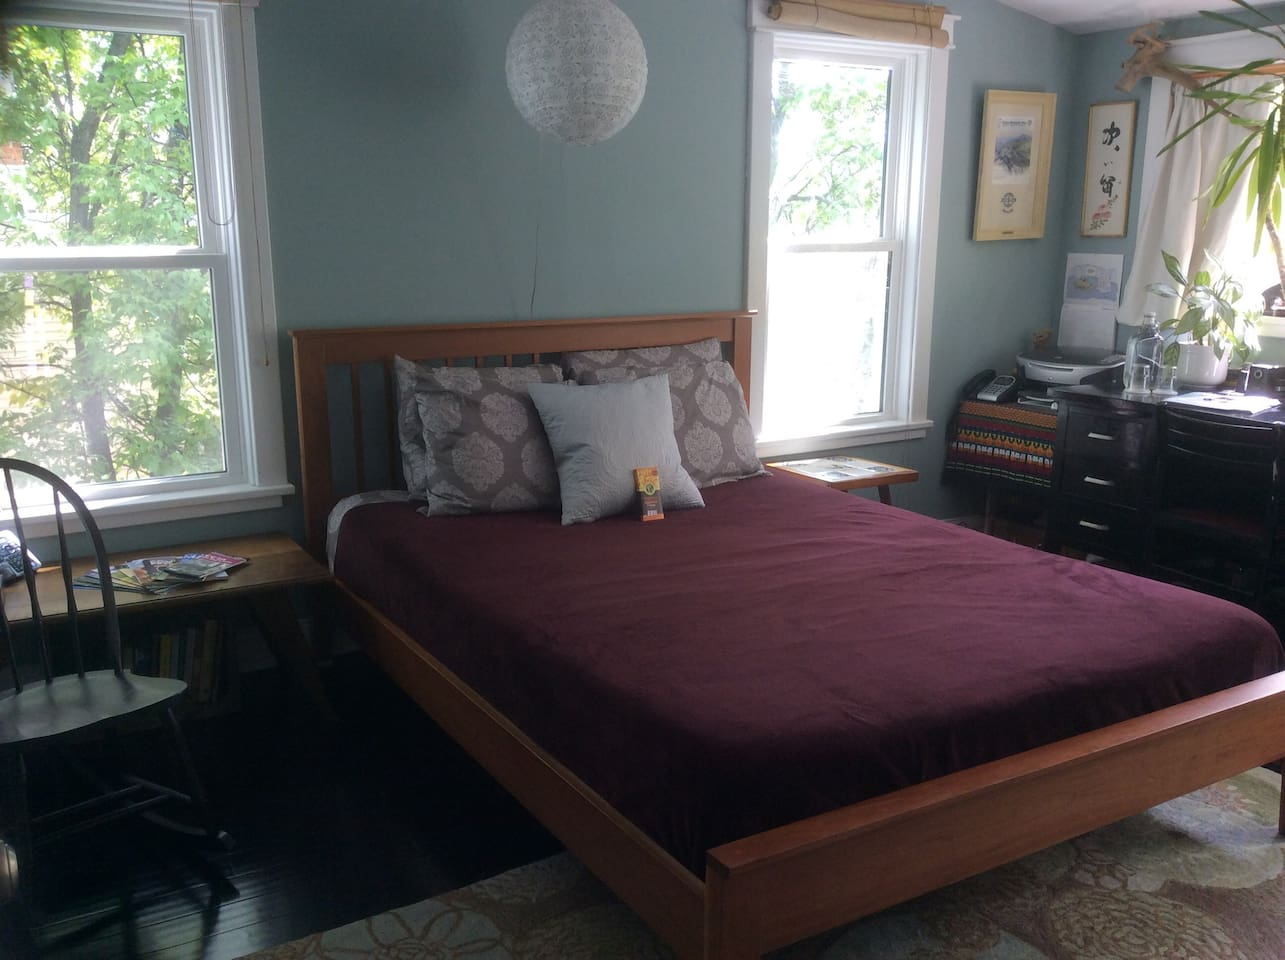 Locally made bed frame, tempurpedic queen mattress and lots of sunshine